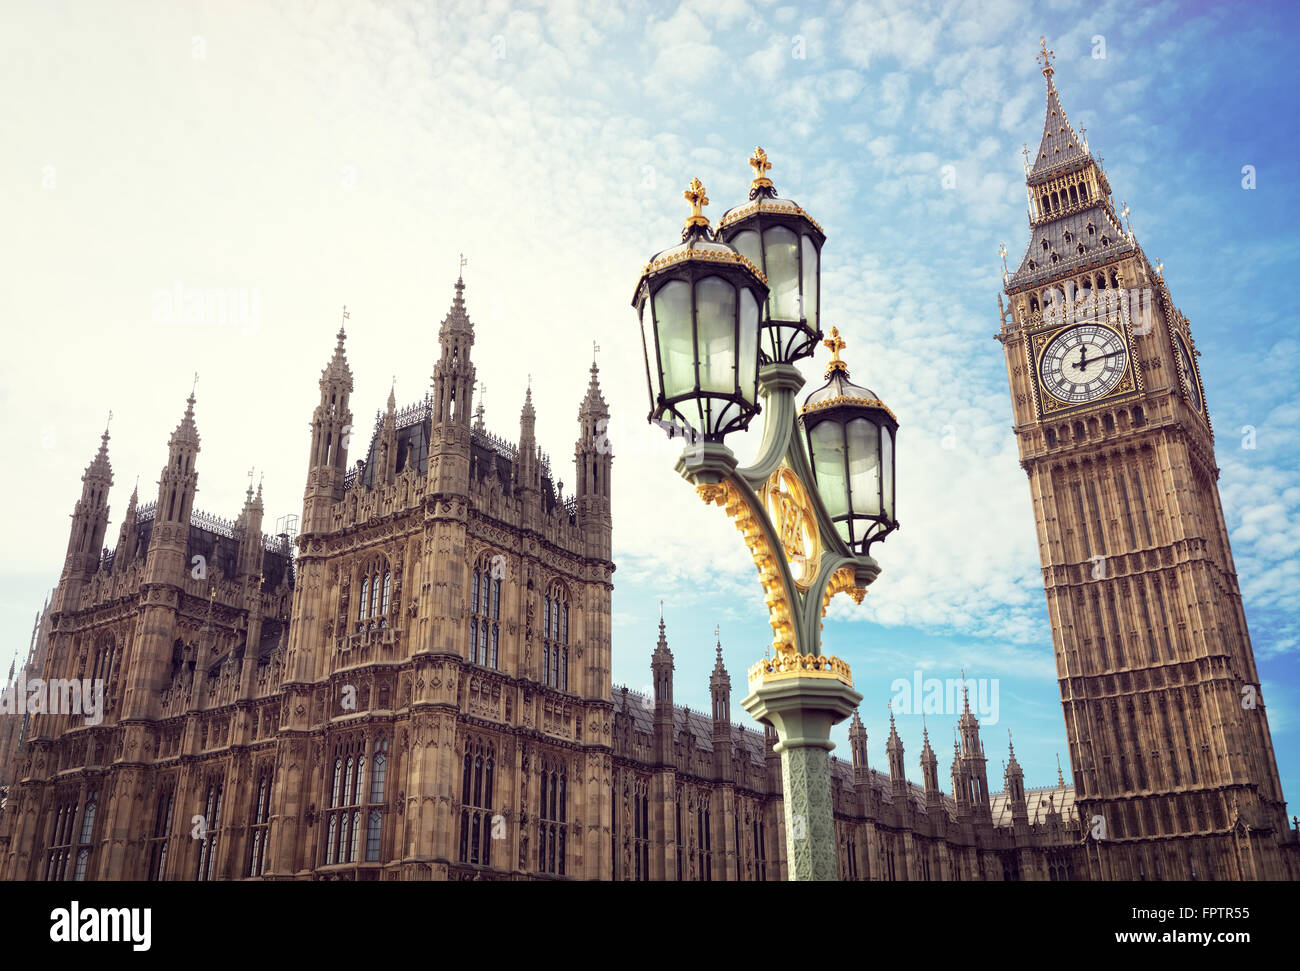 Big Ben and the houses of parliament in London - Stock Image